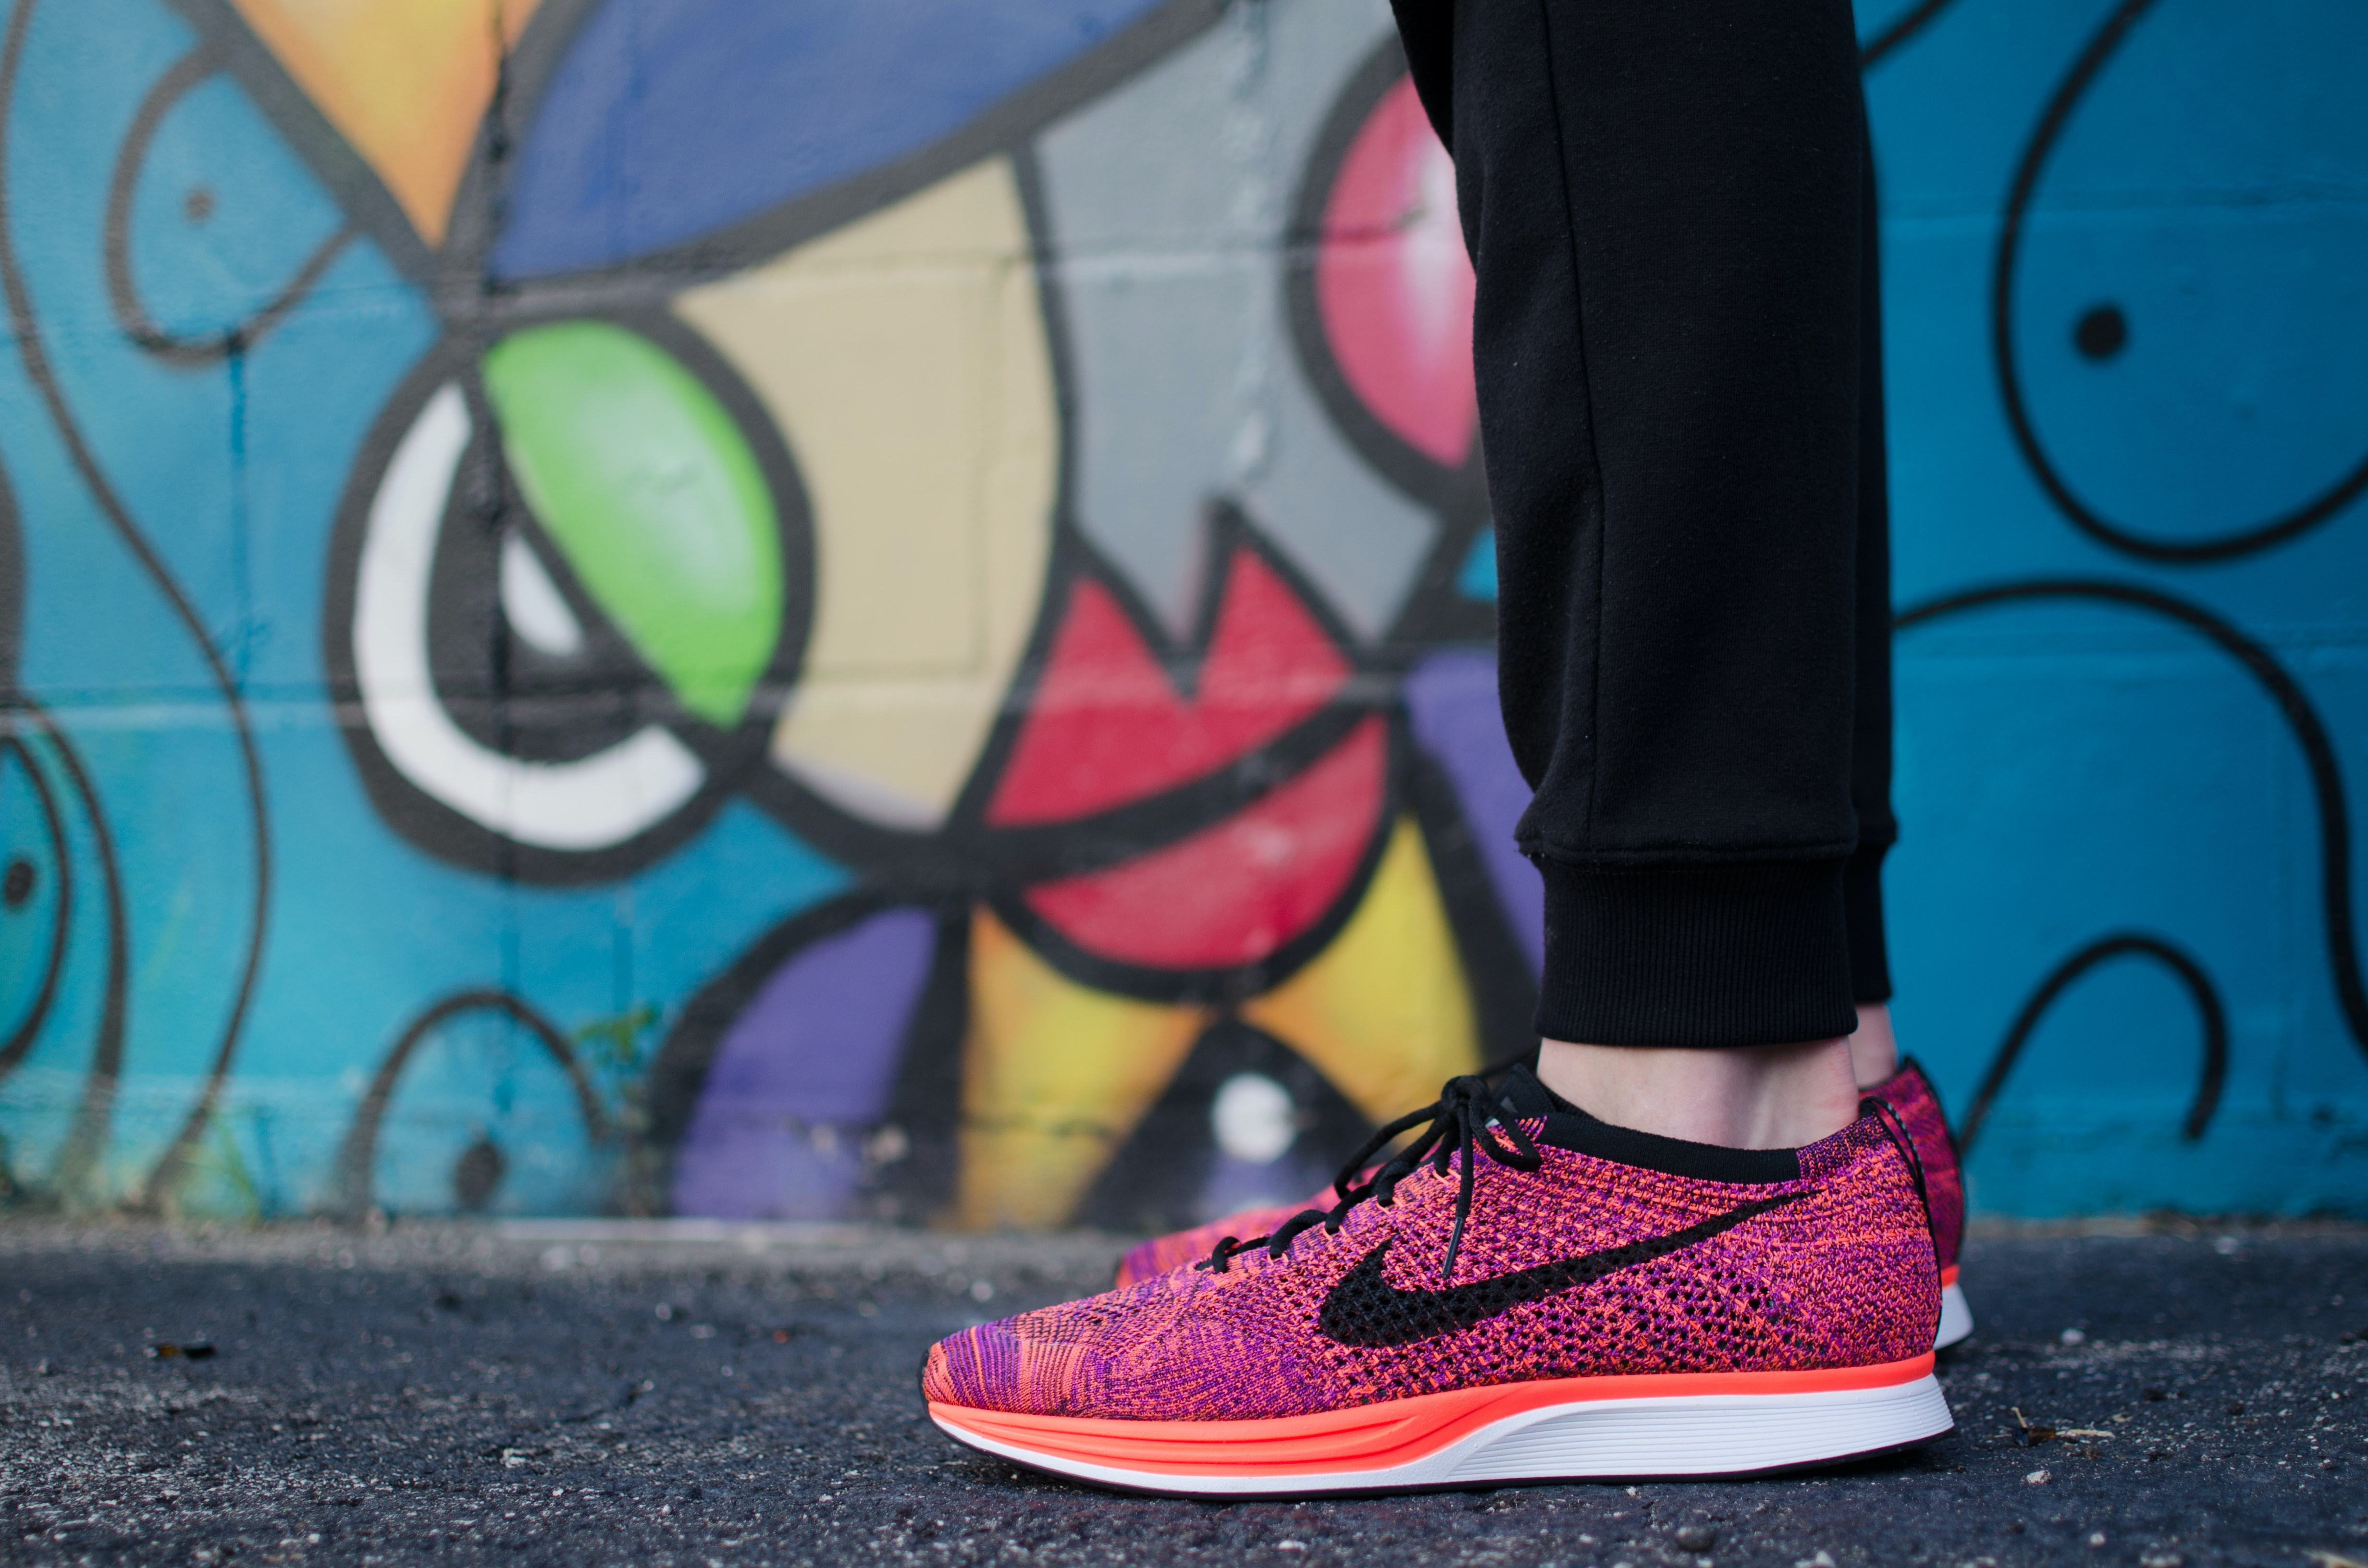 A close-up shot of a woman in Orlando wearing pink Nike trainers